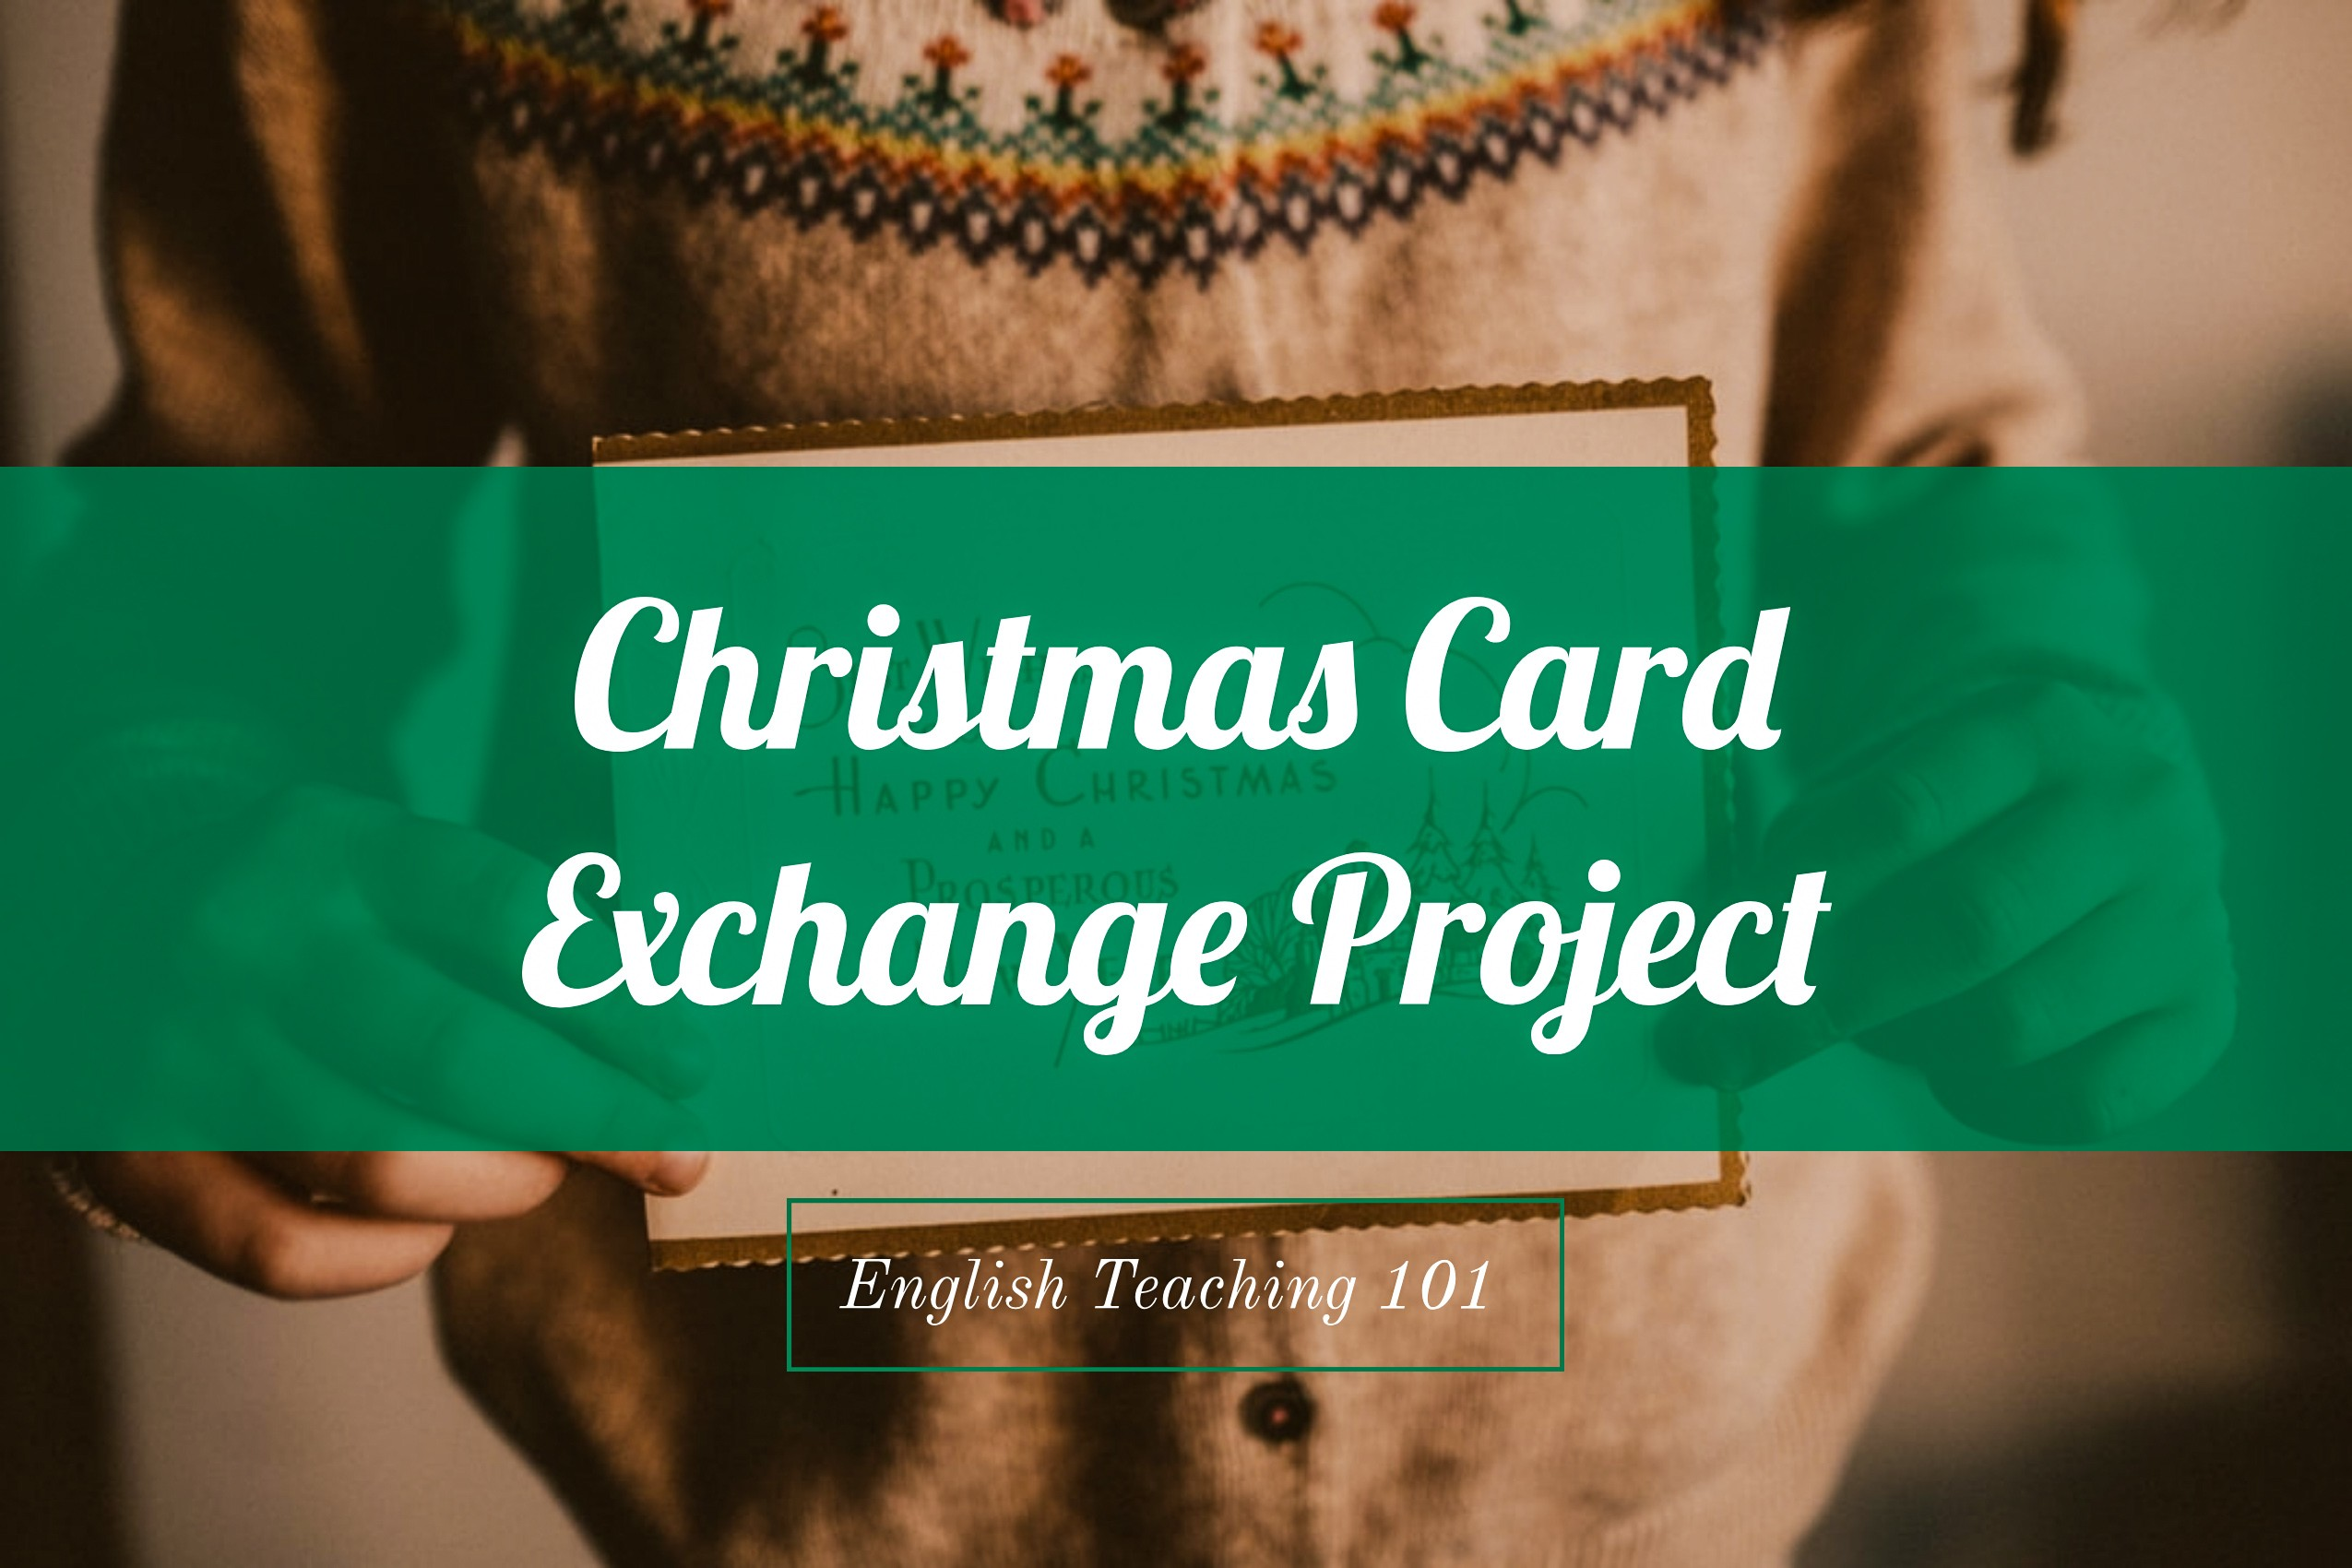 Christmas Card Exchange Project